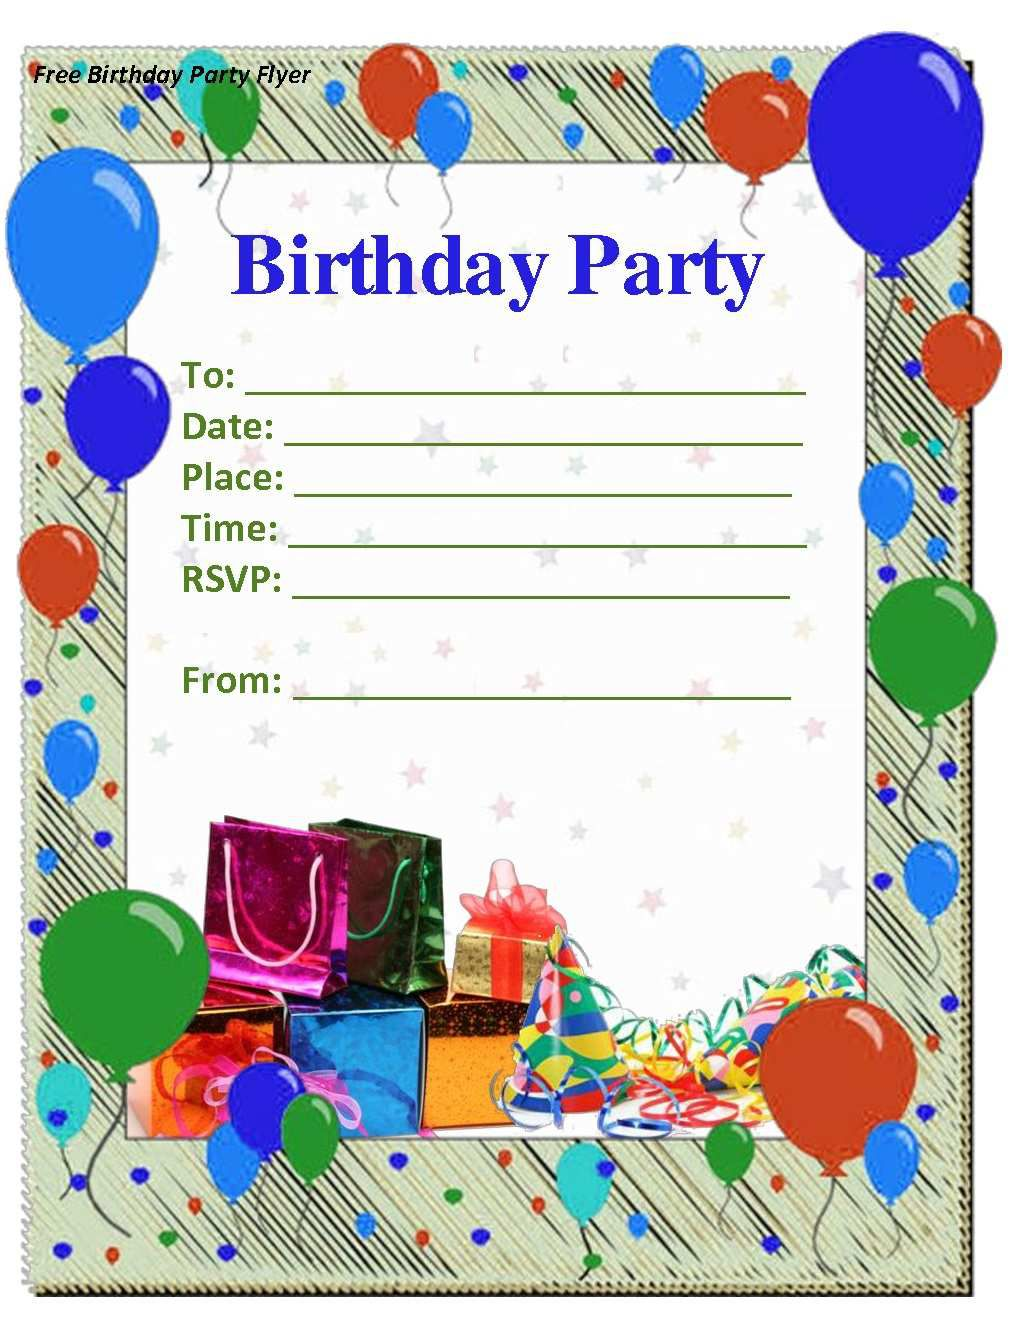 003 Rare Blank Birthday Invitation Template For Microsoft Word Highest Clarity Full